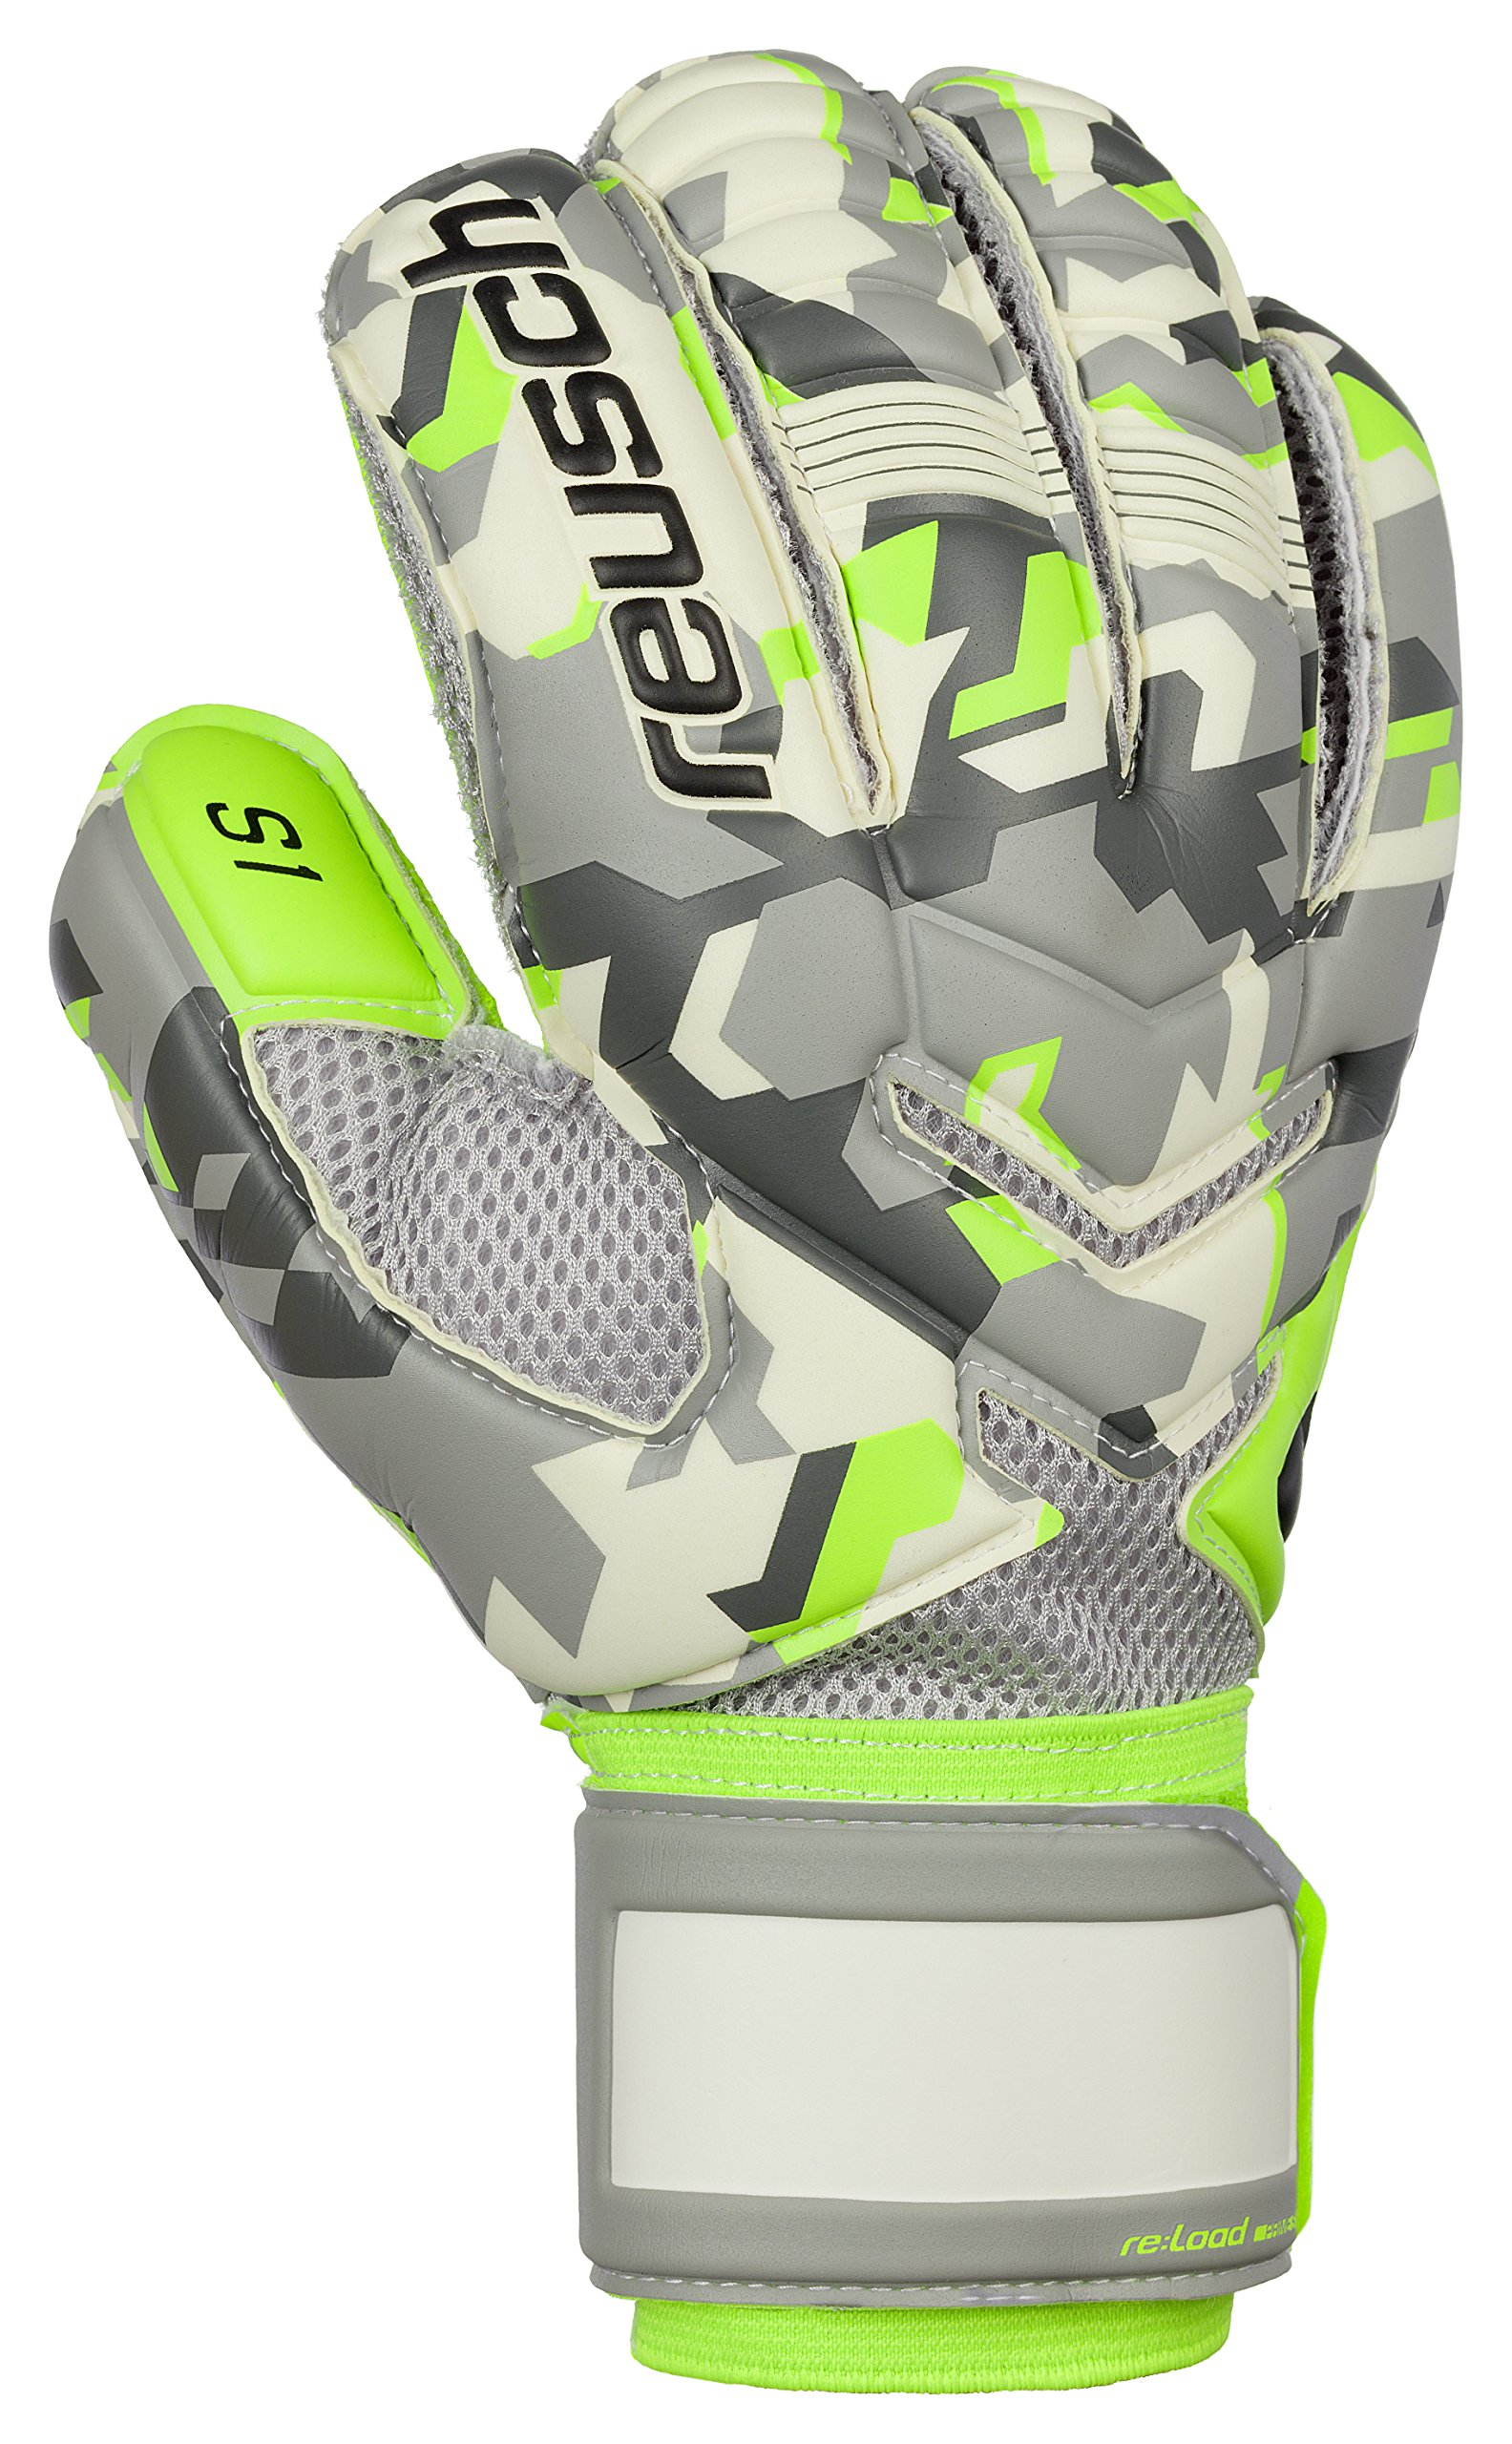 82aa1e84ab1 Get Quotations · Reusch Soccer Reusch Re: Load Prime S1 Goalkeeper Glove -  Size Reusch Re: Load